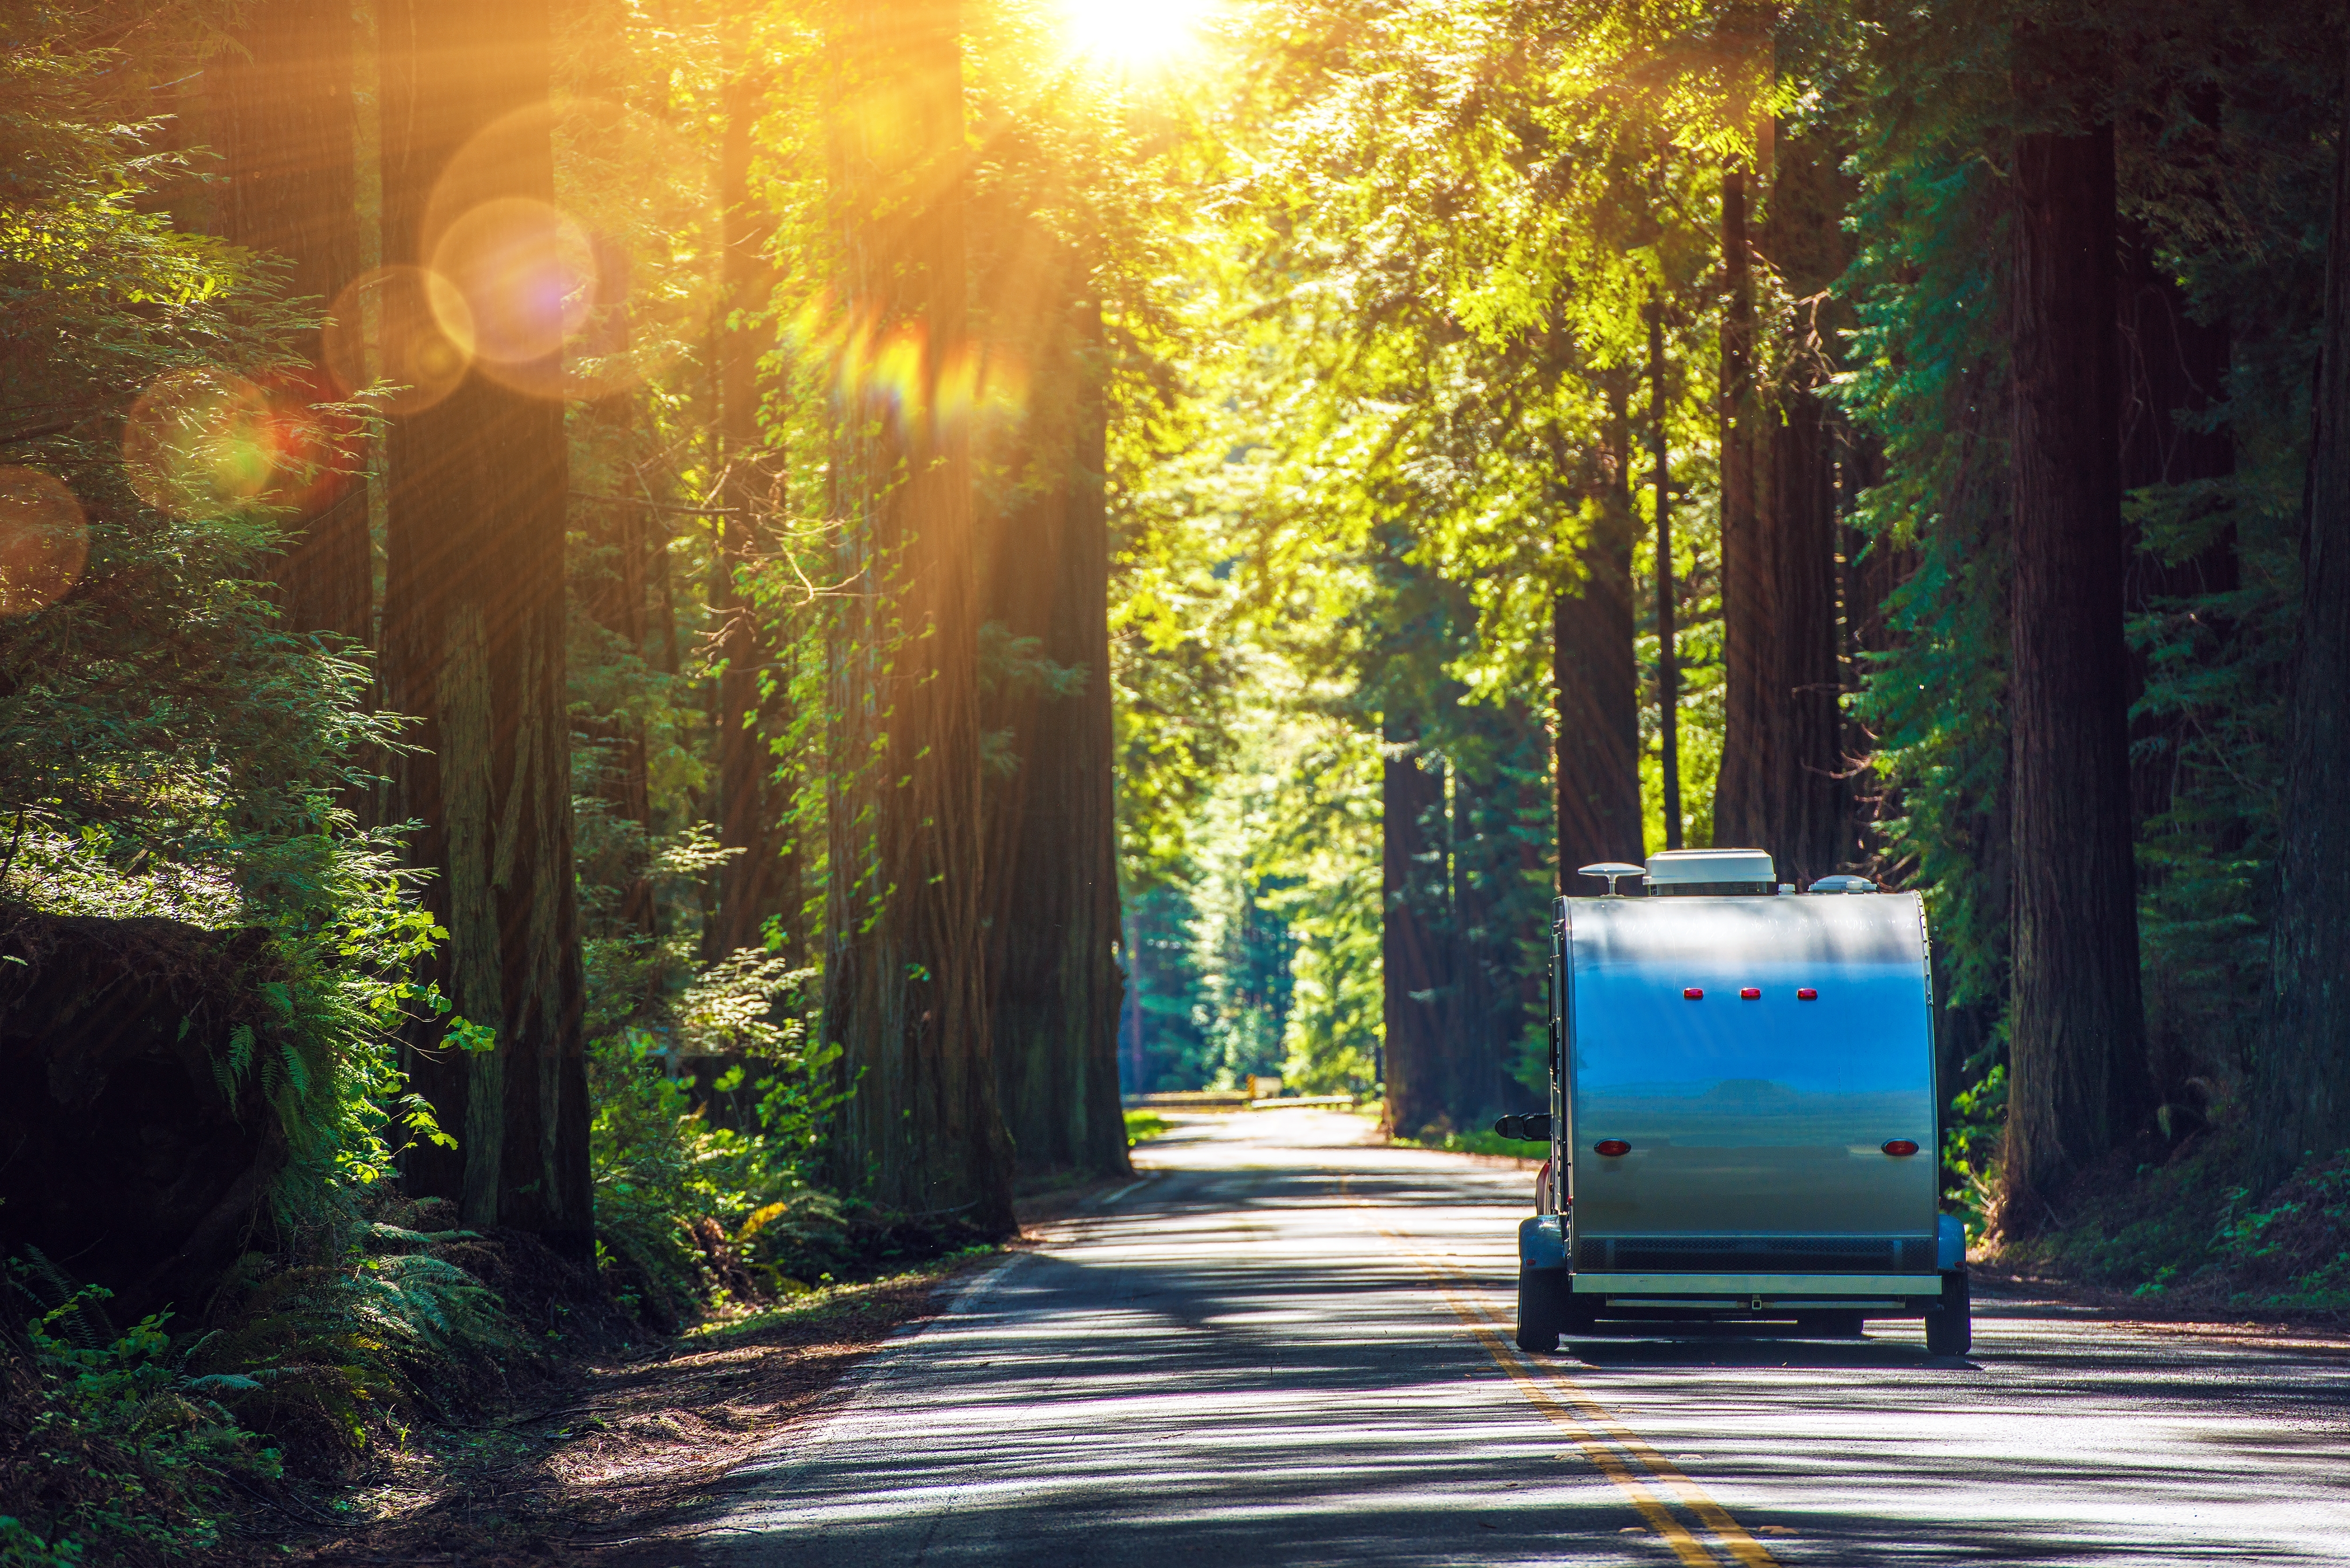 camper-on-road-in-forest